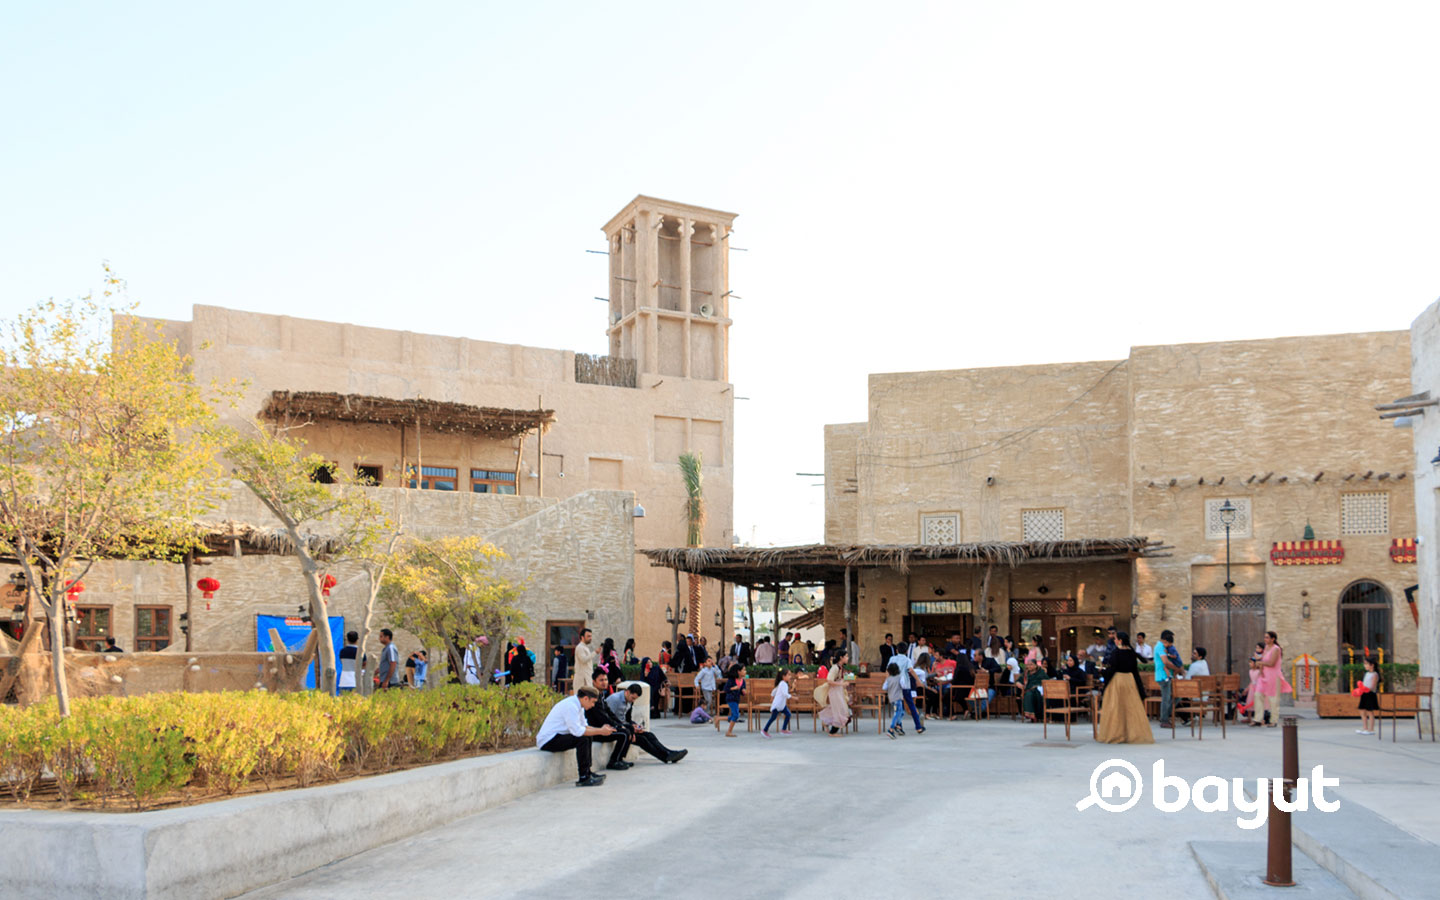 Restaurants in Al Seef include Mamikoniyan, Ila, Brass Cafe and more